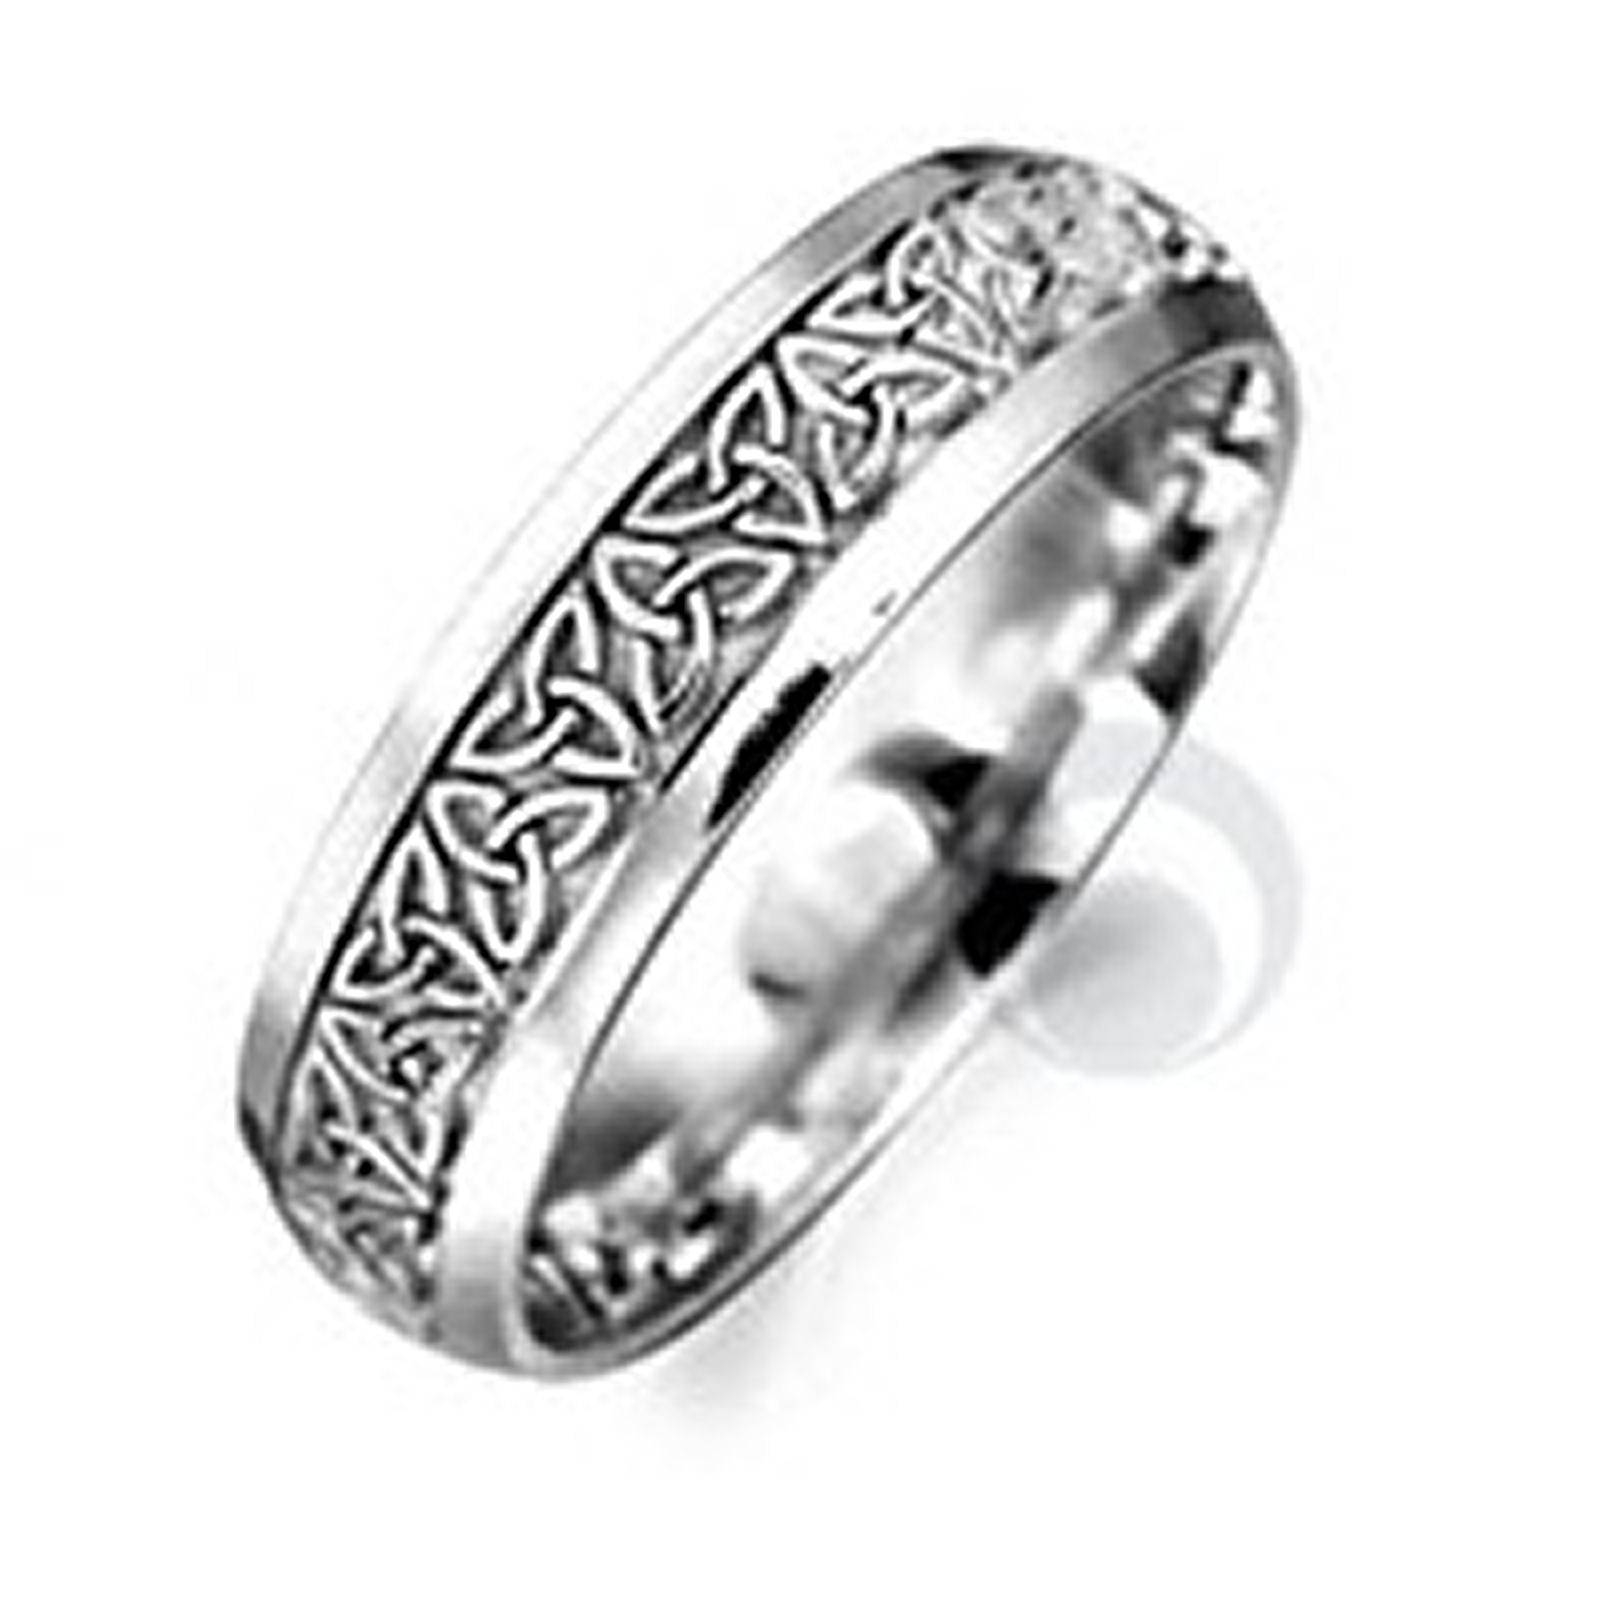 in band cushion gaelic celtic rings engagement cfm from engagementringsre ring mdc knot white nyc diamonds diamond gold